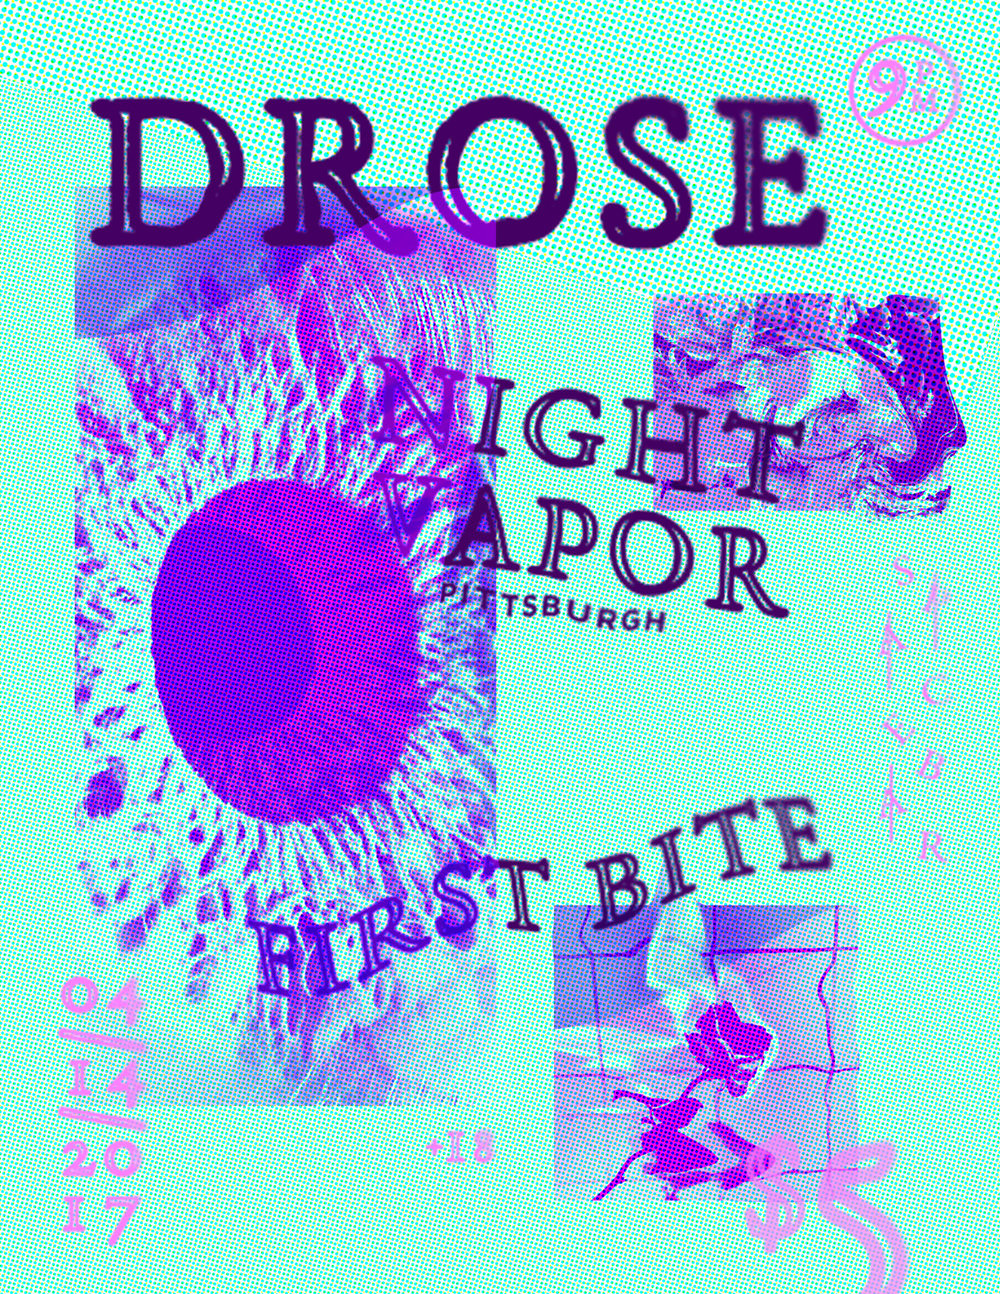 Flyer for Drose, Night Vapor & First Bite @spacebar 04142017! Come out!